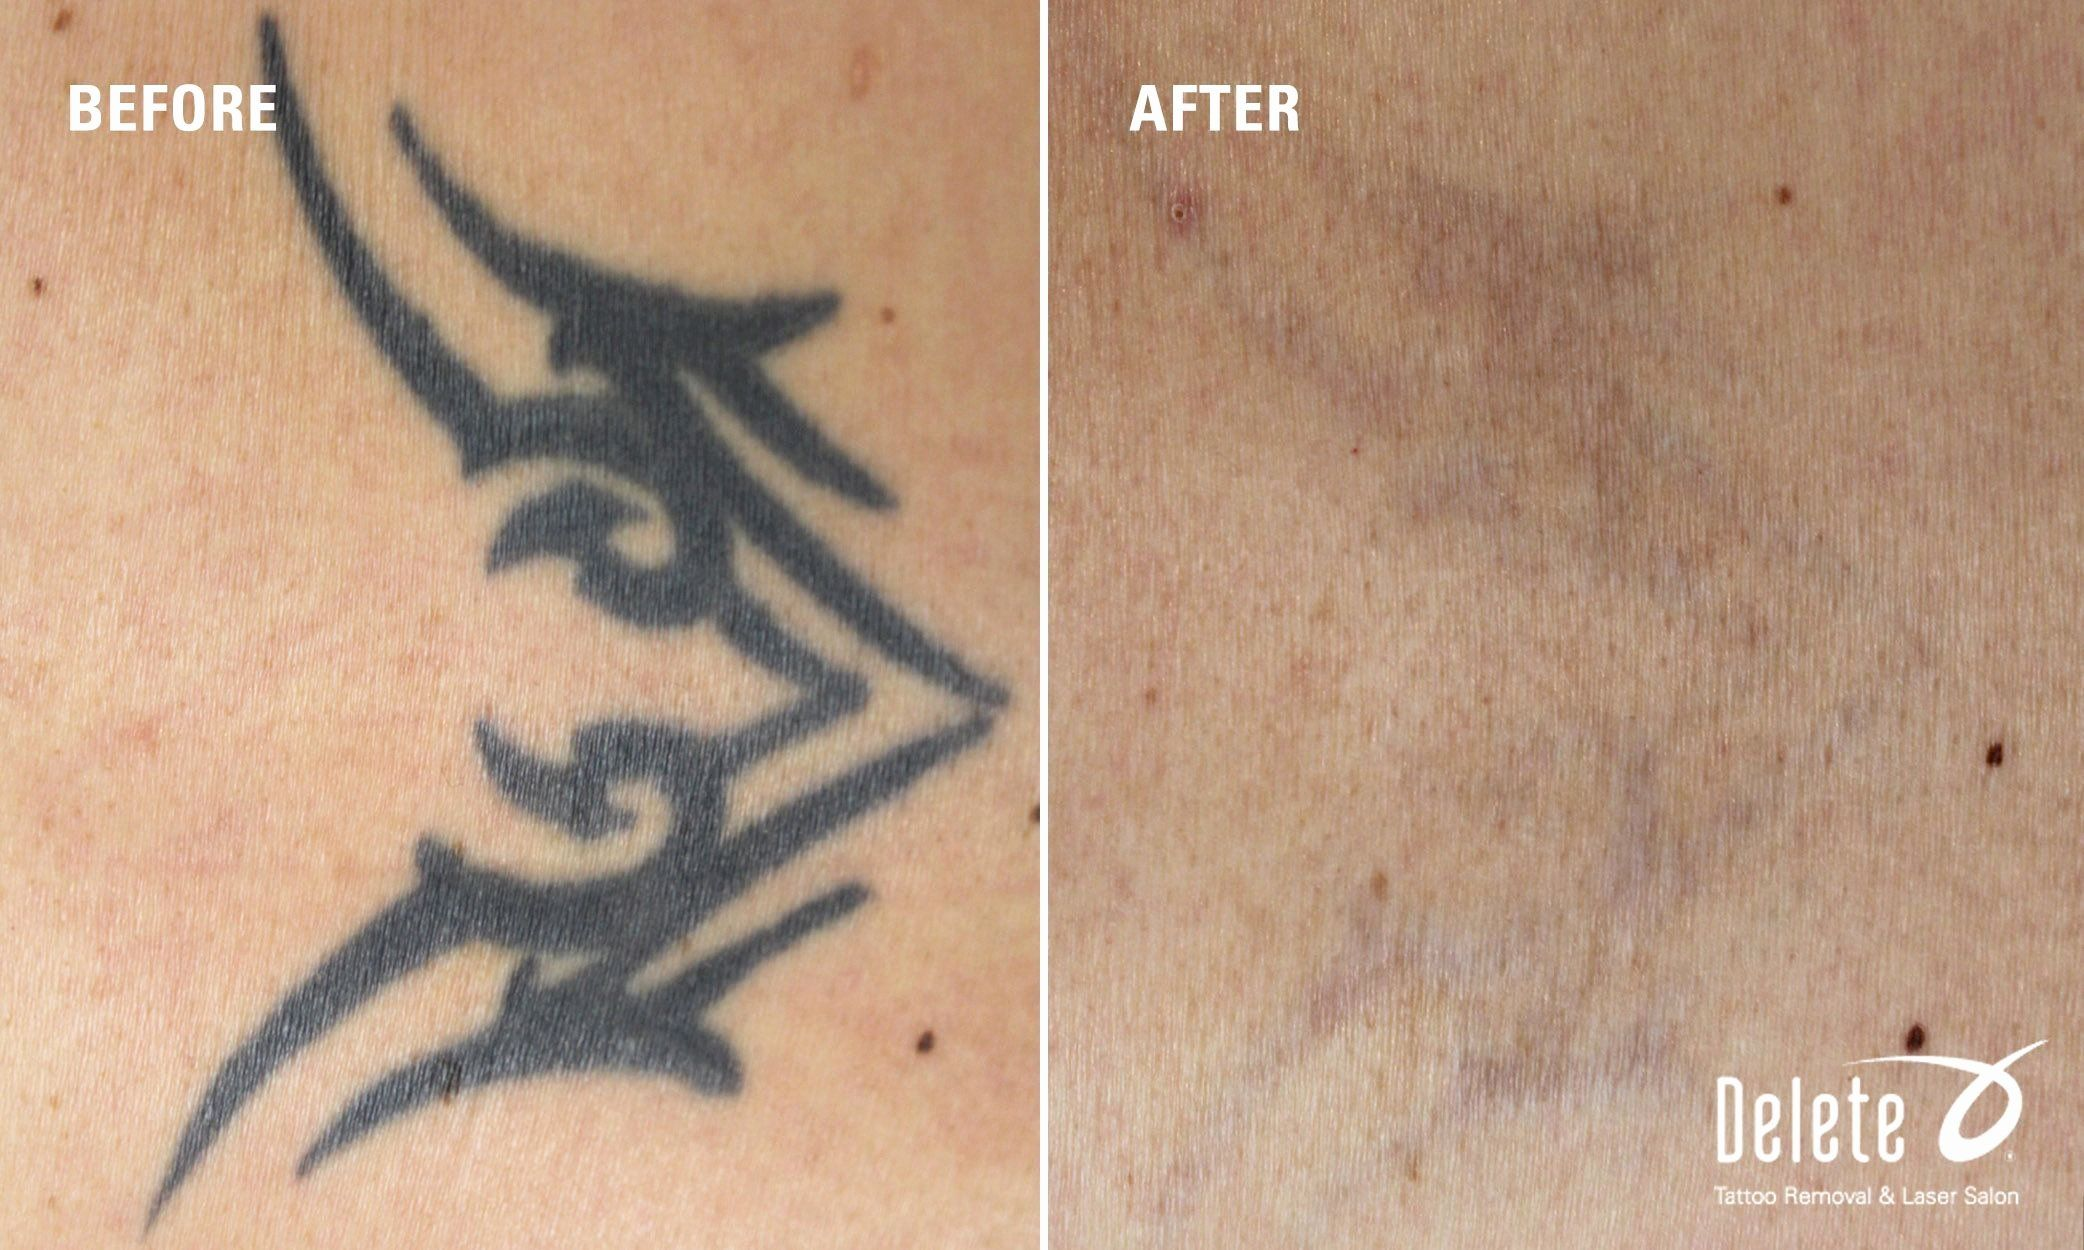 Can You Get A Tattoo Removed Inspirational The Valley S Best Tattoo Removal With The Exclusive Picoway In 2020 Laser Tattoo Tattoo Removal Tattoos